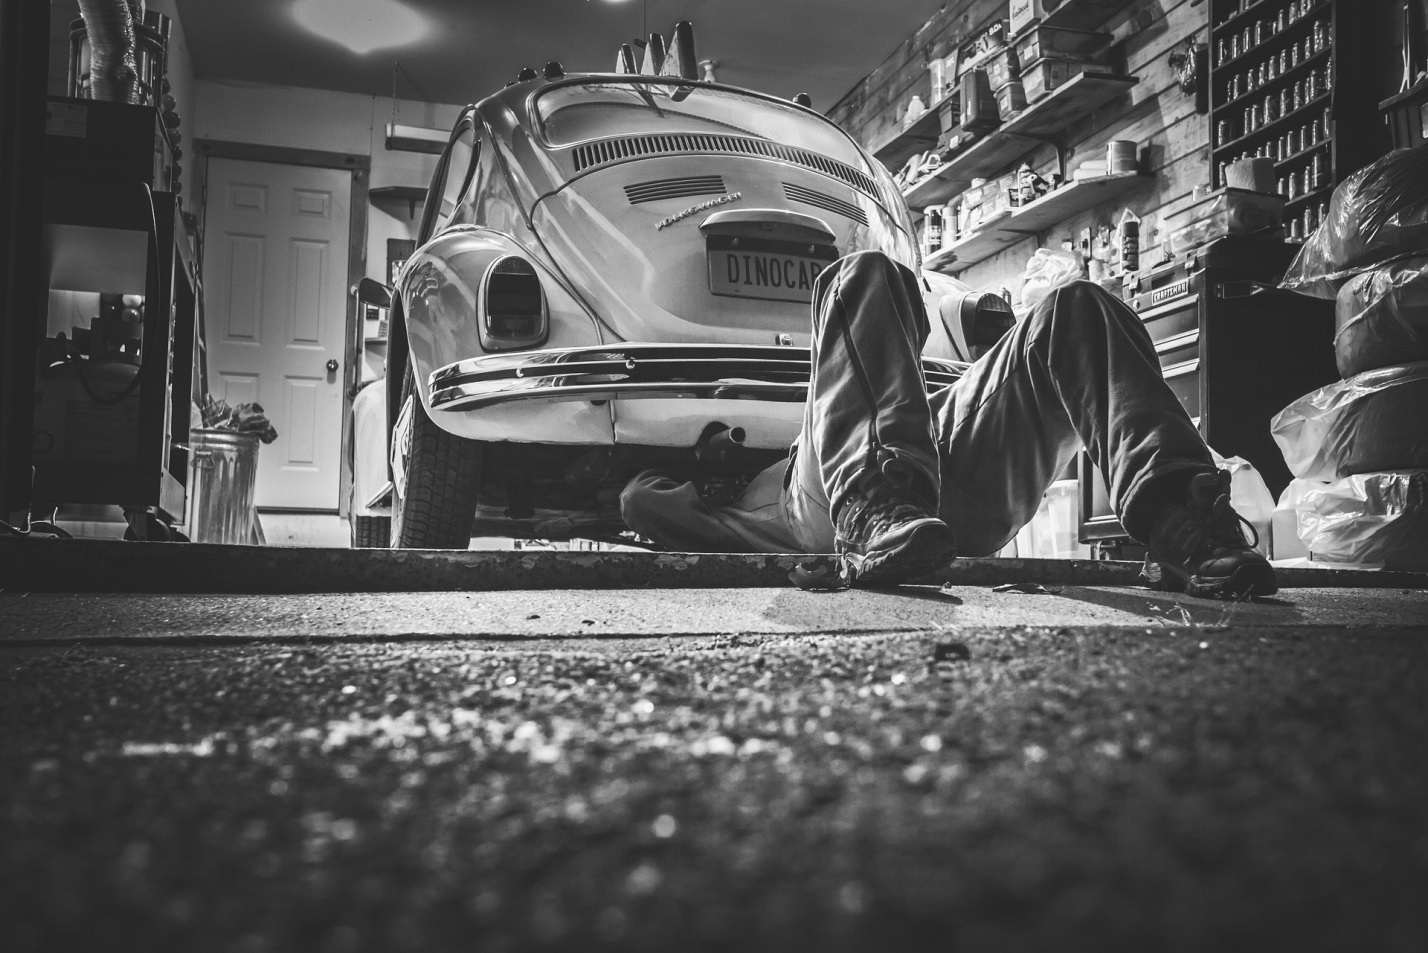 Is your Car Leaking Oil? Here's what you need to look for...